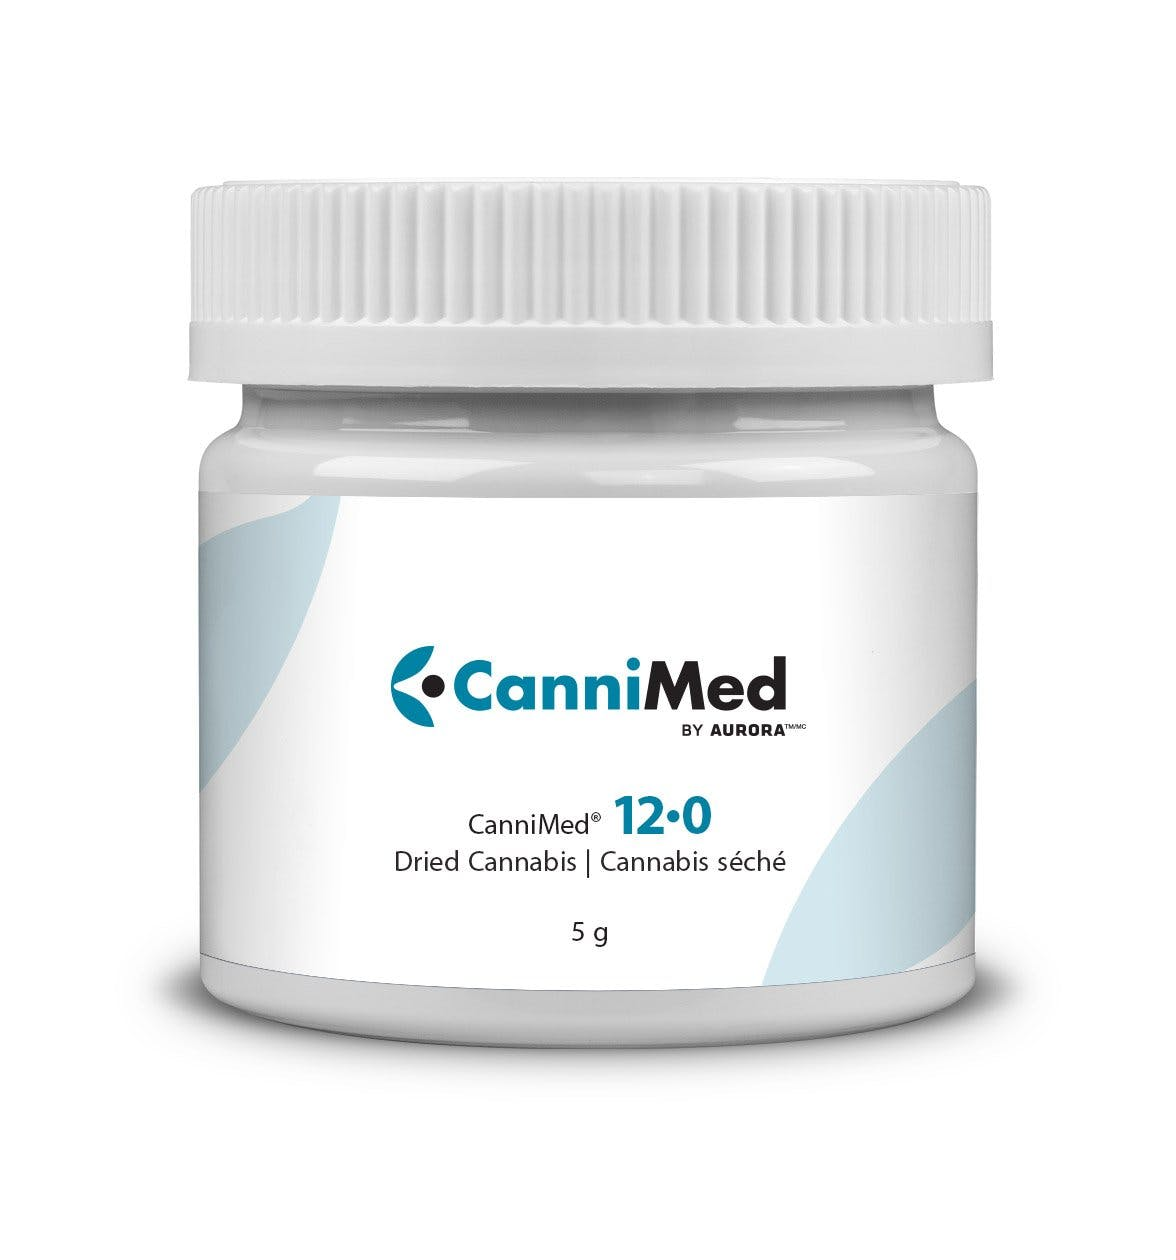 CanniMed 12:0